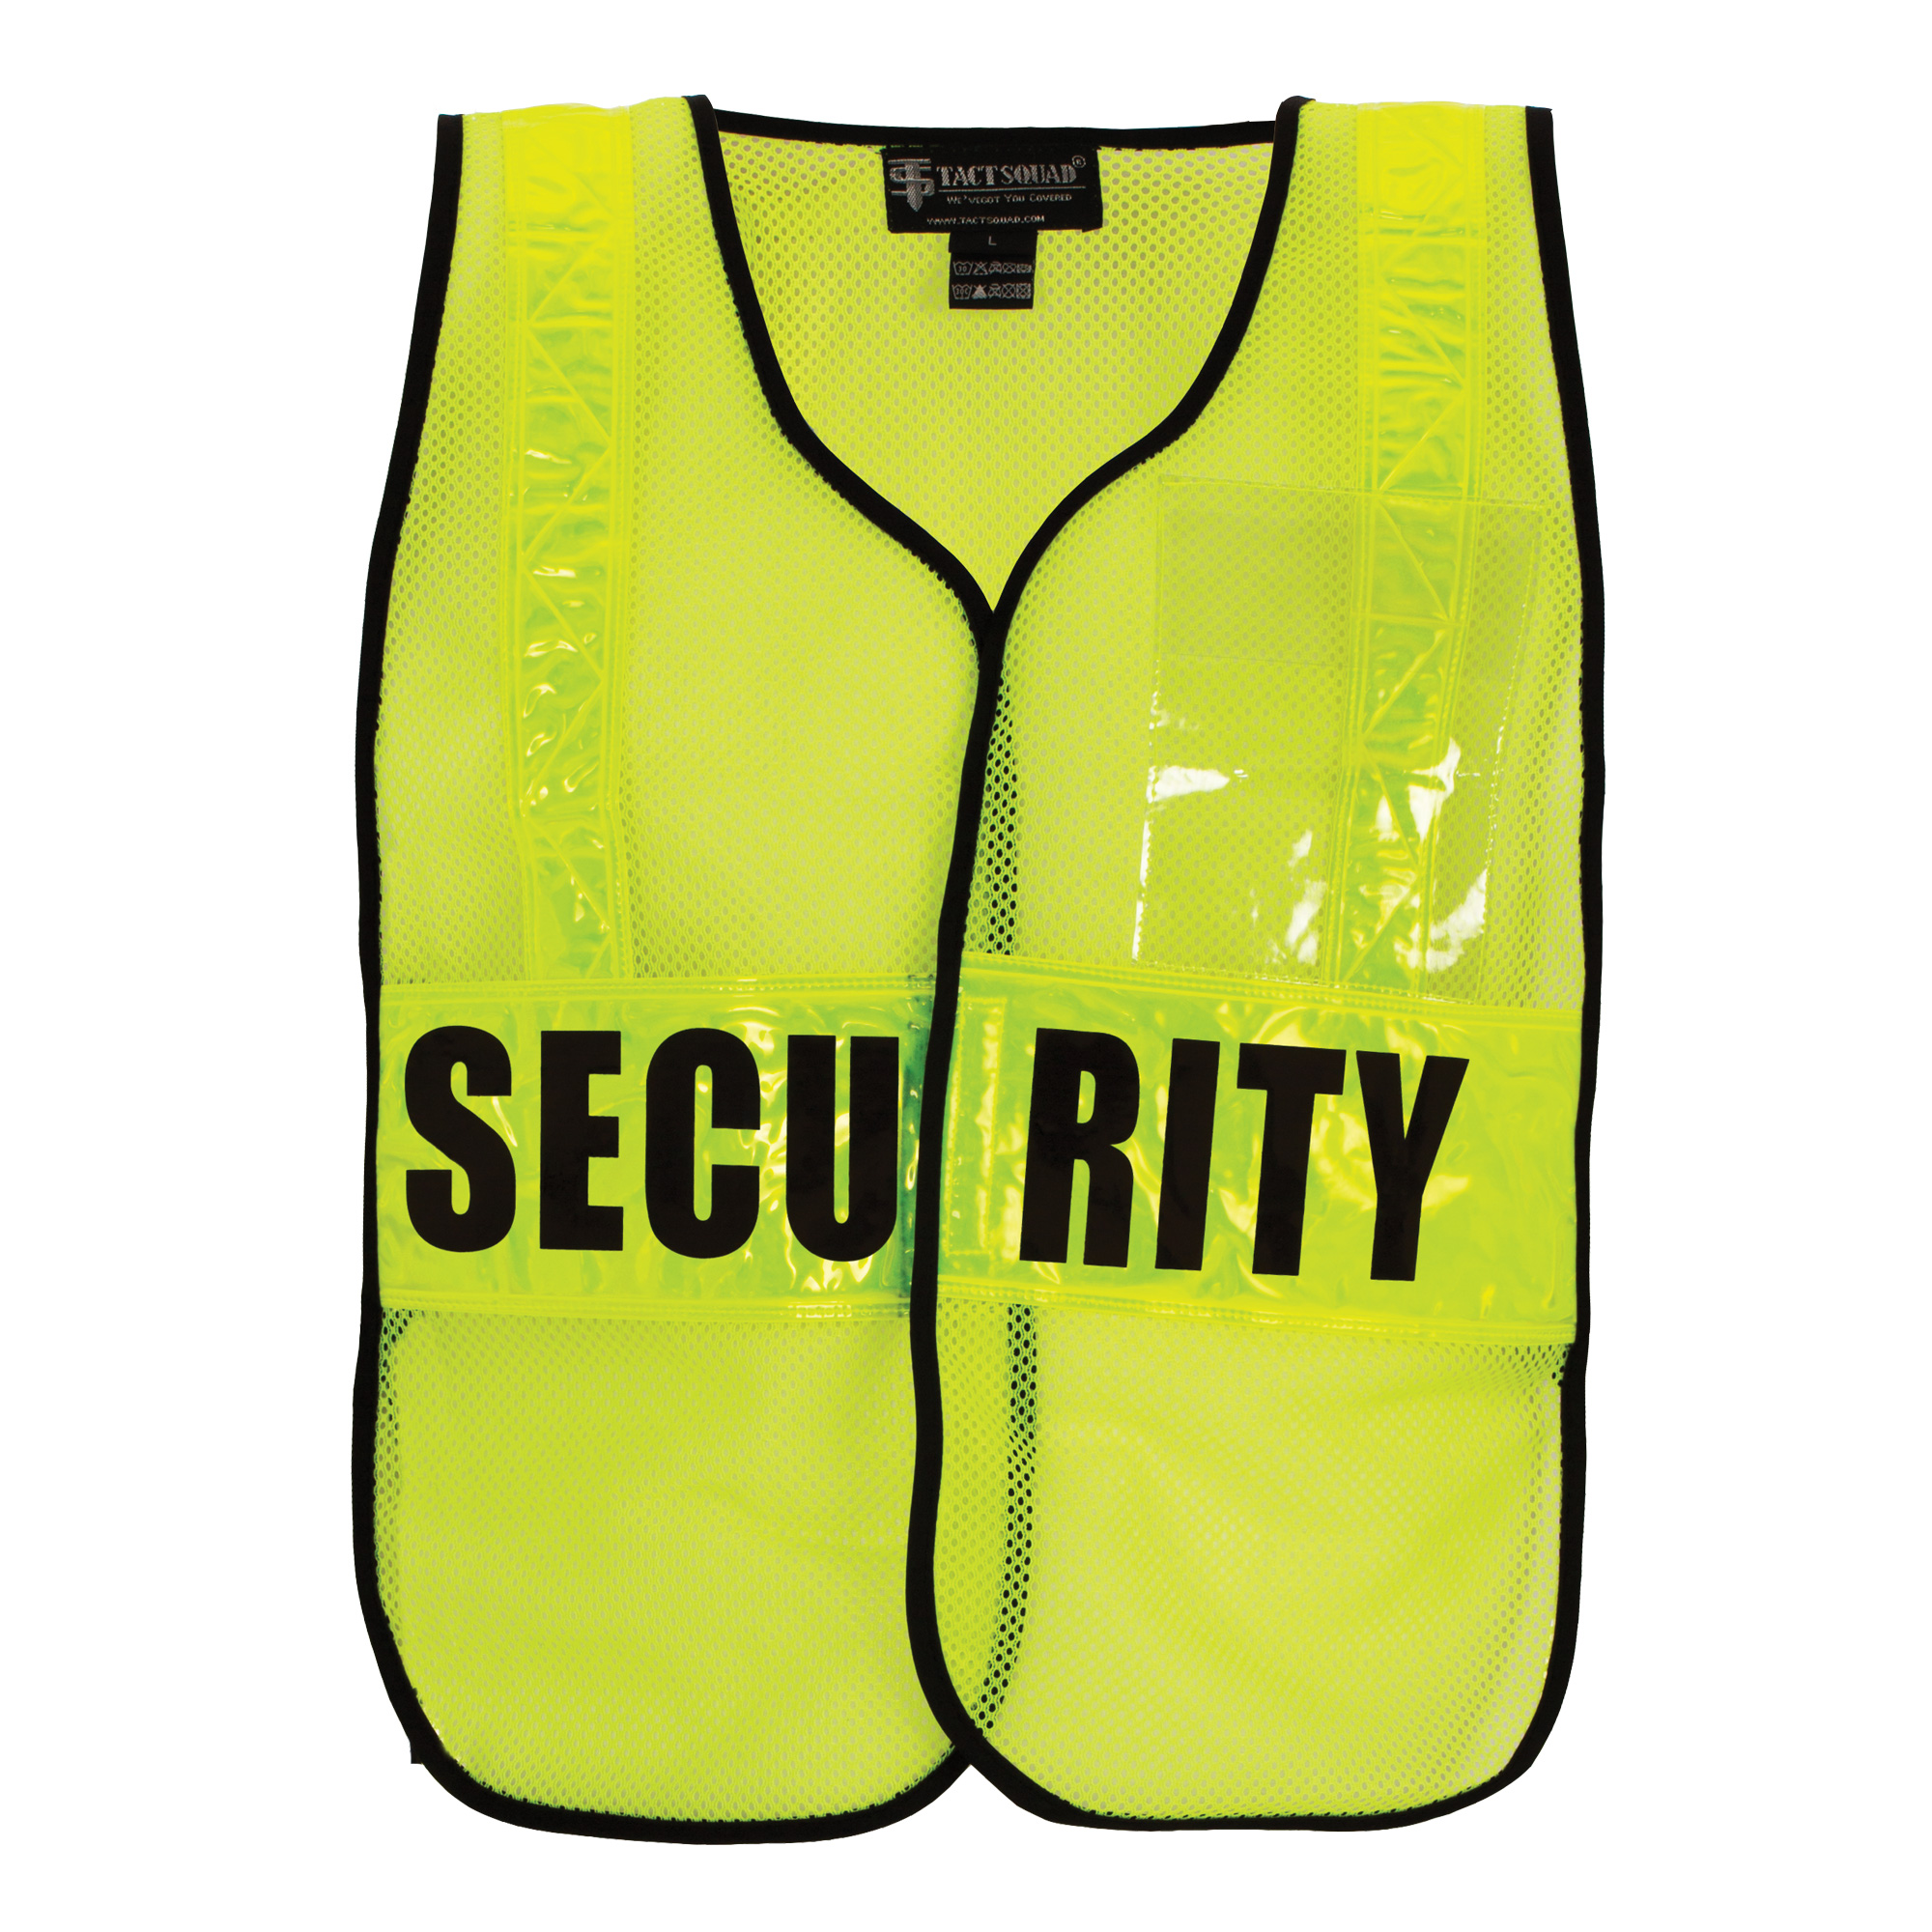 Tact Squad DC65 Air-Mesh Safety Vest | DC65-Tact Squard